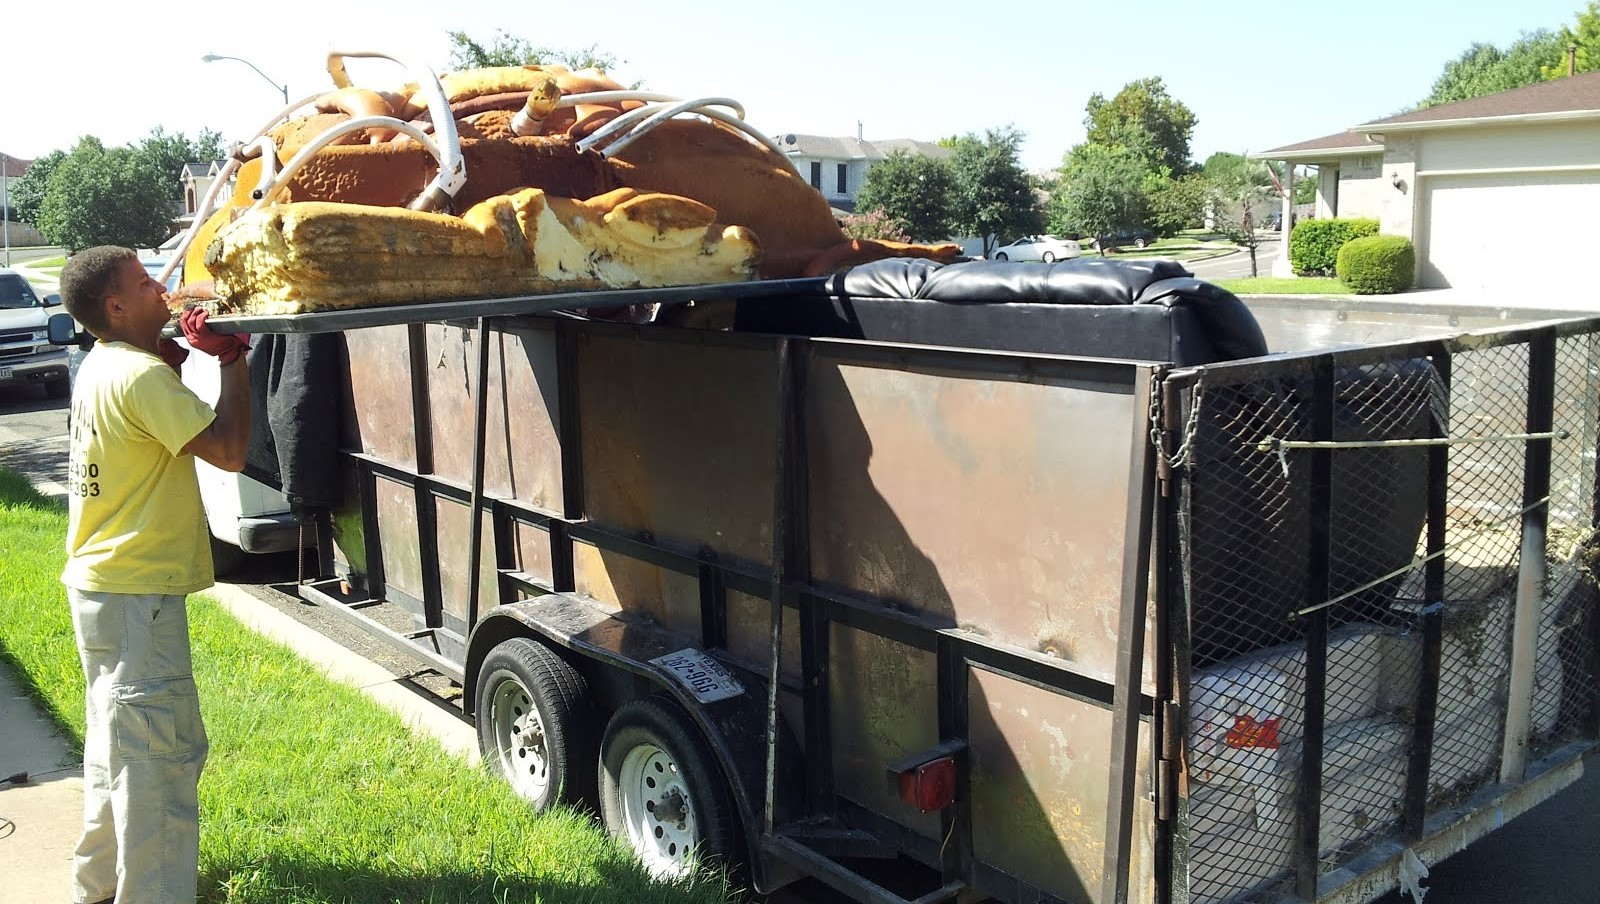 Mesa Dumpster Rental & Junk Removal Services Header Image-We Offer Residential and Commercial Dumpster Removal Services, Portable Toilet Services, Dumpster Rentals, Bulk Trash, Demolition Removal, Junk Hauling, Rubbish Removal, Waste Containers, Debris Removal, 20 & 30 Yard Container Rentals, and much more!